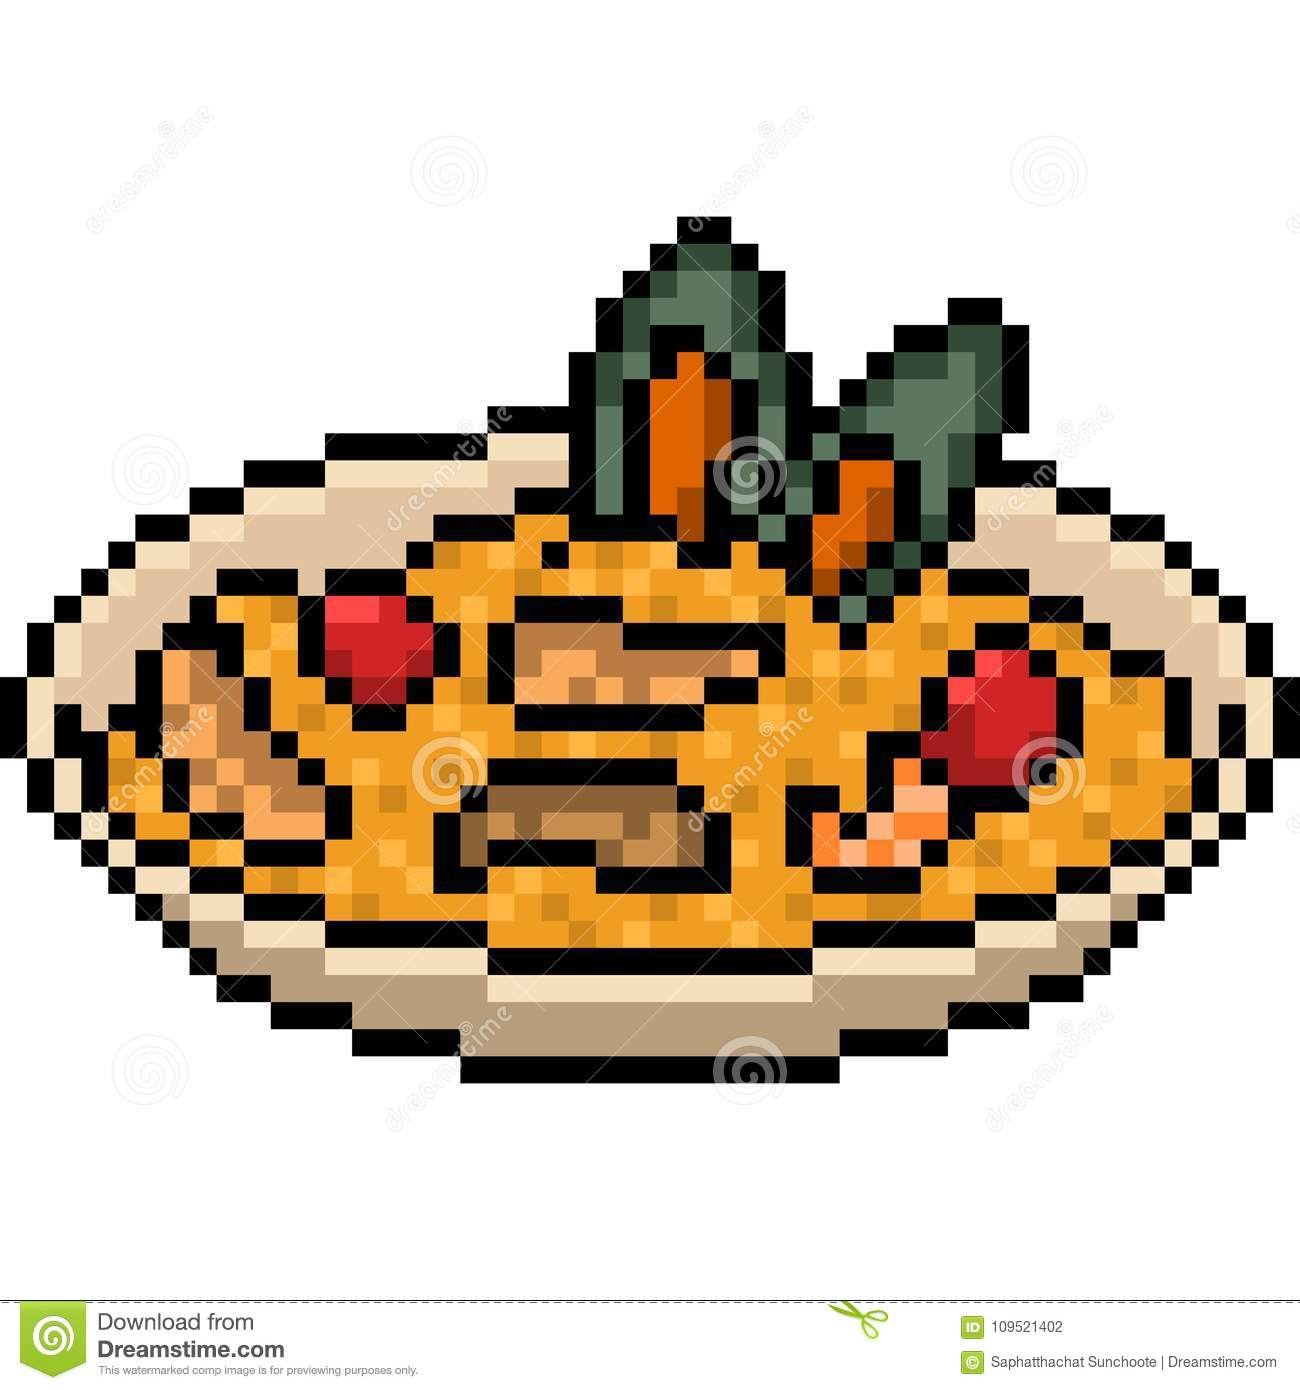 Vector Pixel Art Food Fried Rice Stock Vector Illustration Of Tomato Shell 109521402